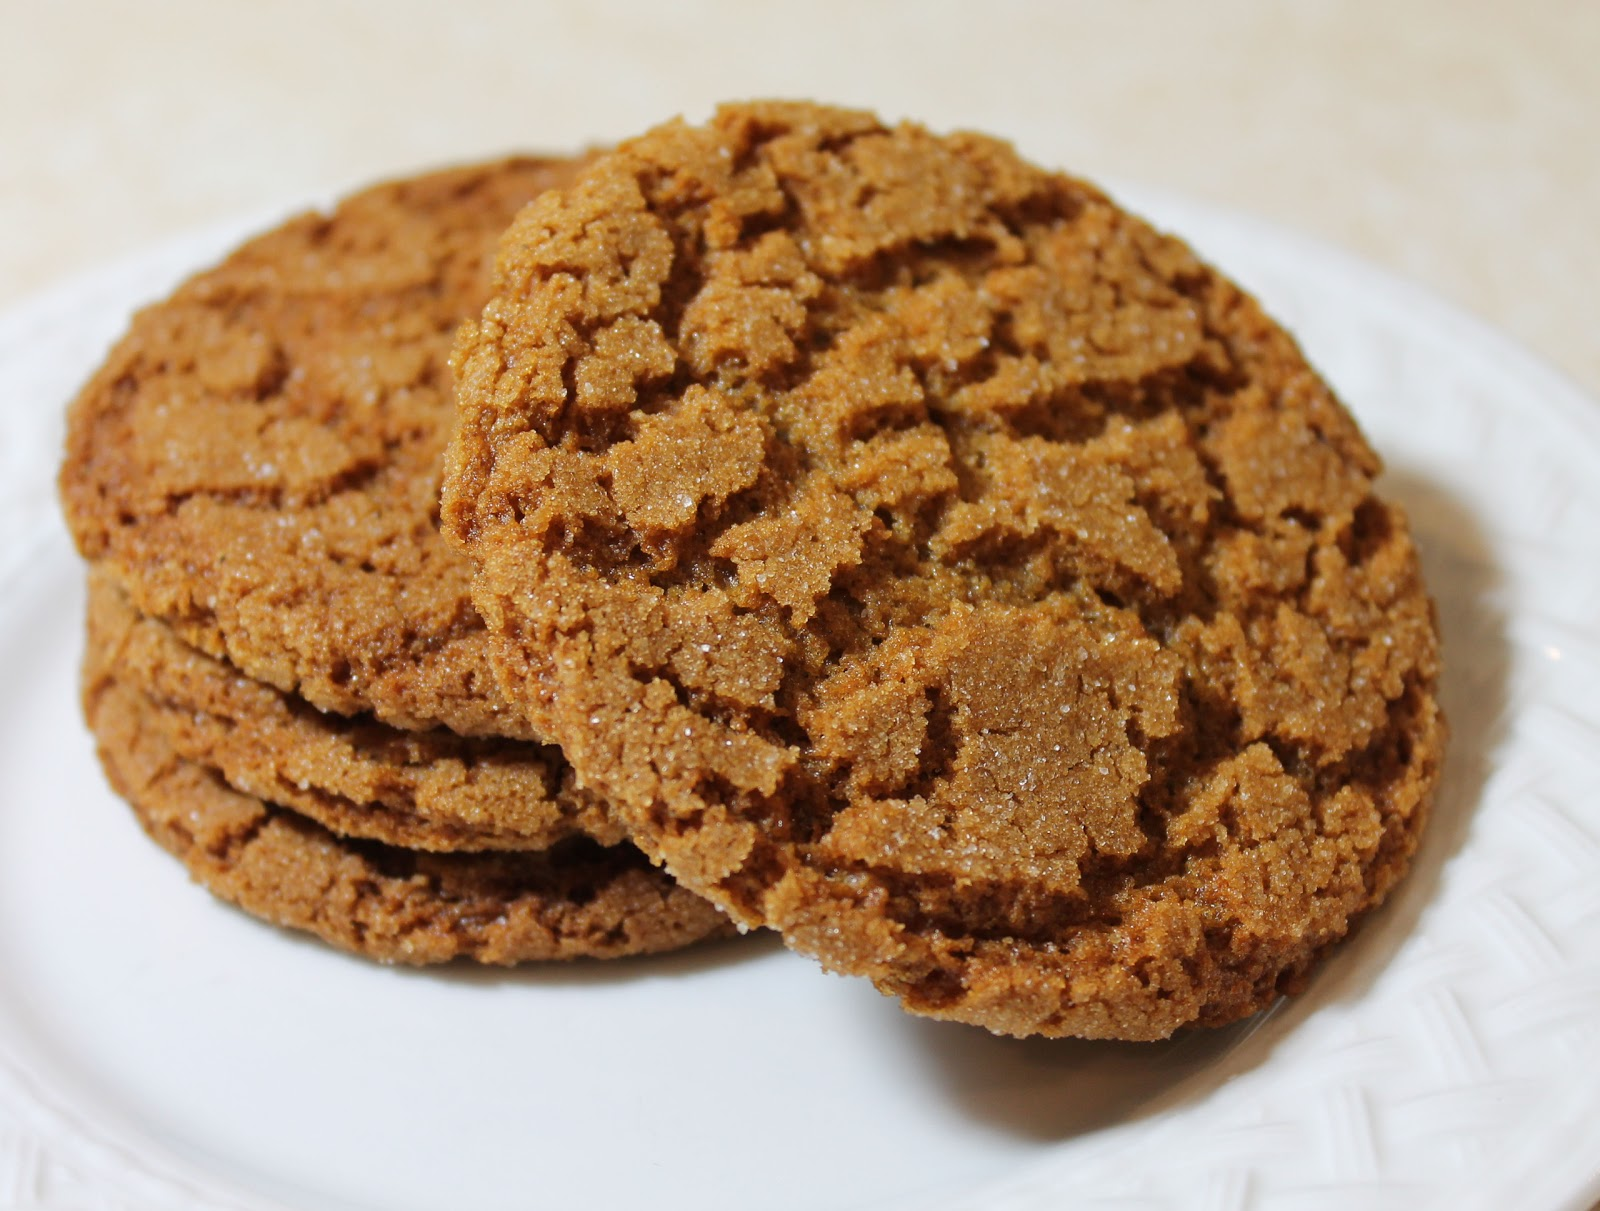 ... words to describe a good ginger snap cookie the ginger snap cookies we